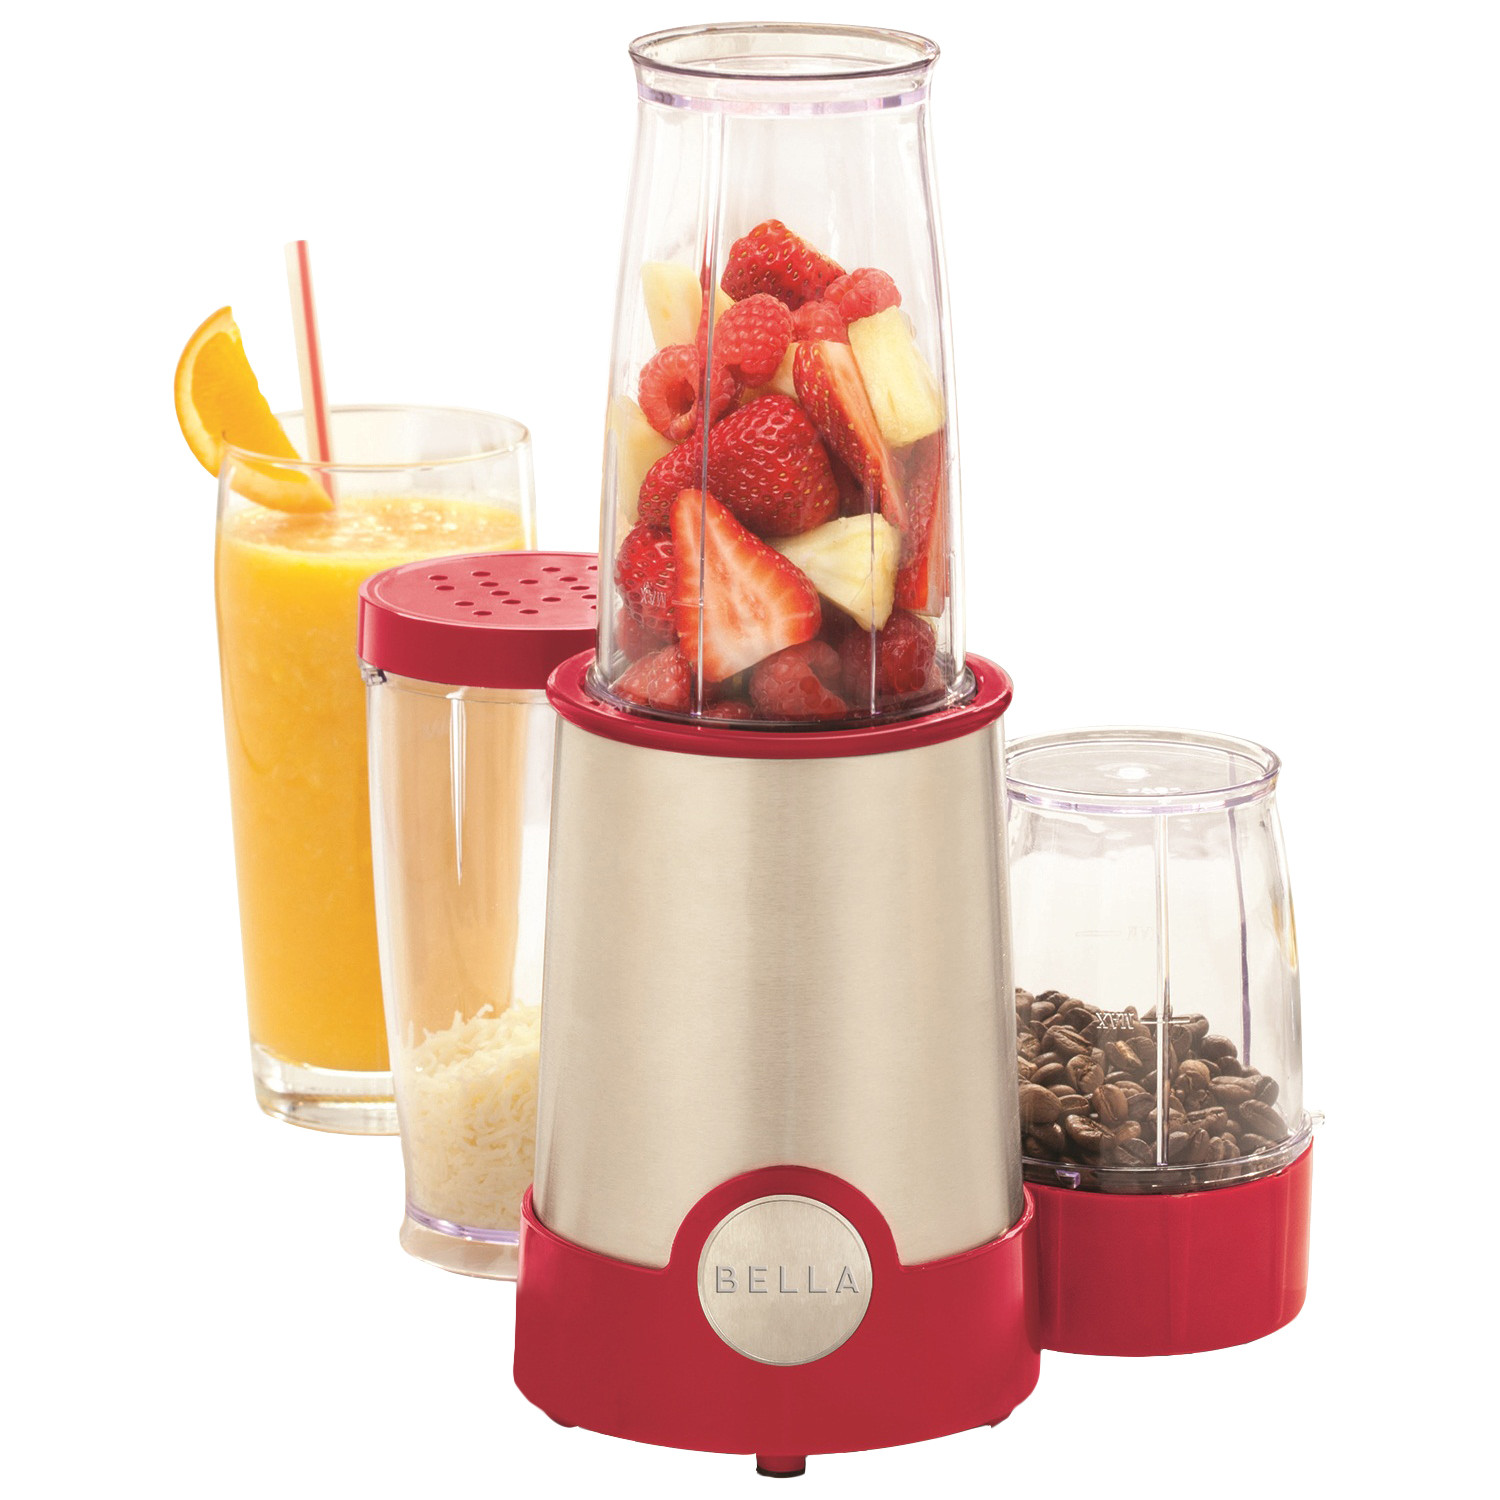 10 best blenders for smoothies in 2017 sleek smoothie blenders for every budget. Black Bedroom Furniture Sets. Home Design Ideas